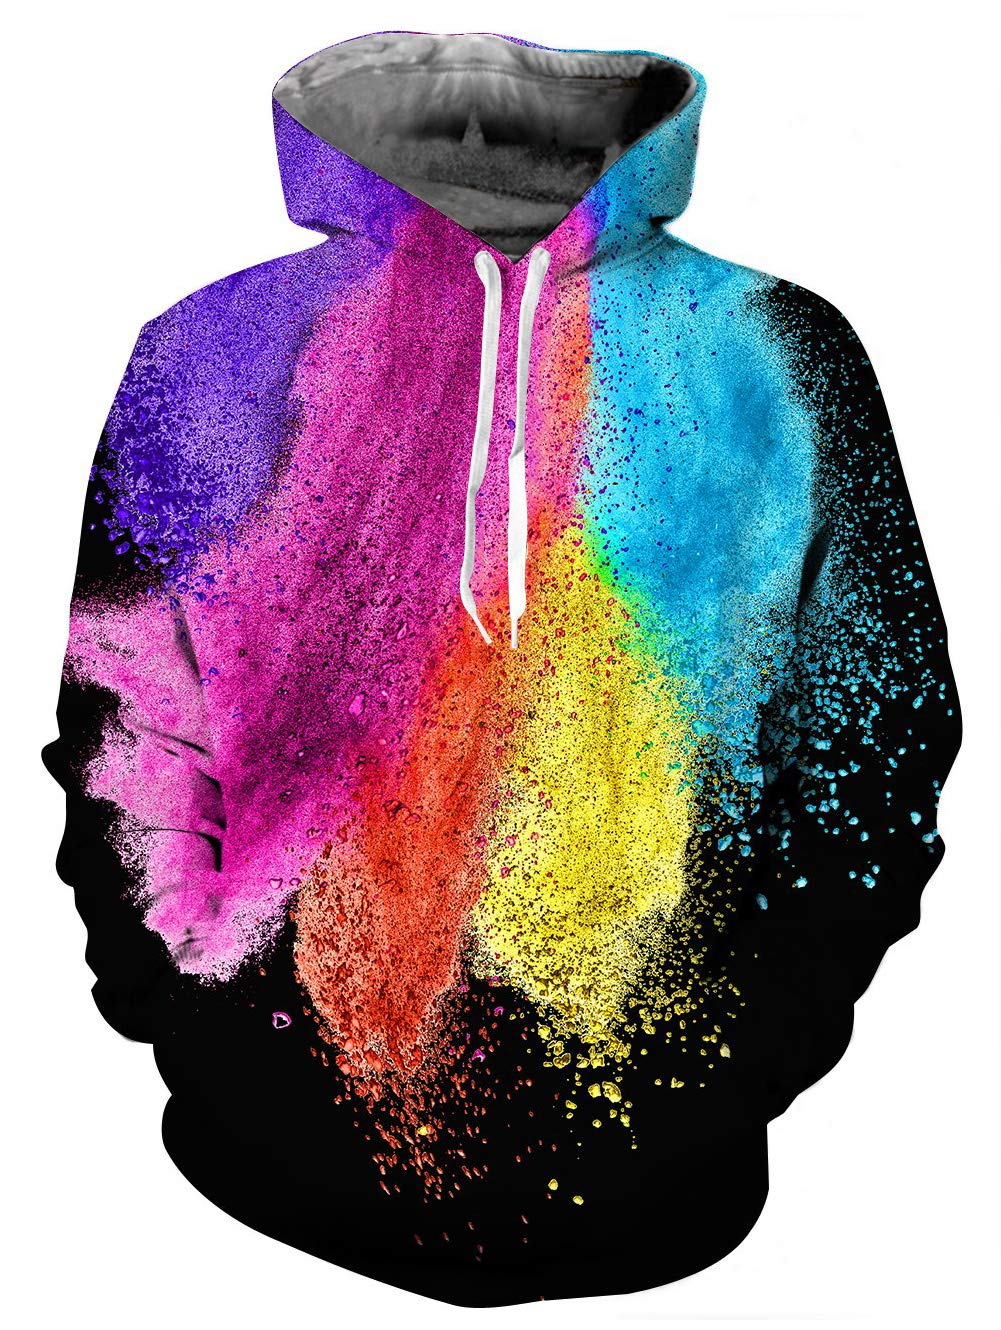 TUONROAD Mens Trendy Drawstring Trippy 3D Digital Print Hoodies Shirt Rainbow Black Purple Turquoise Yellow Red Pink Paint Color Block Realistic Sweatshirt Athletic Pullover with Big Pocket Front